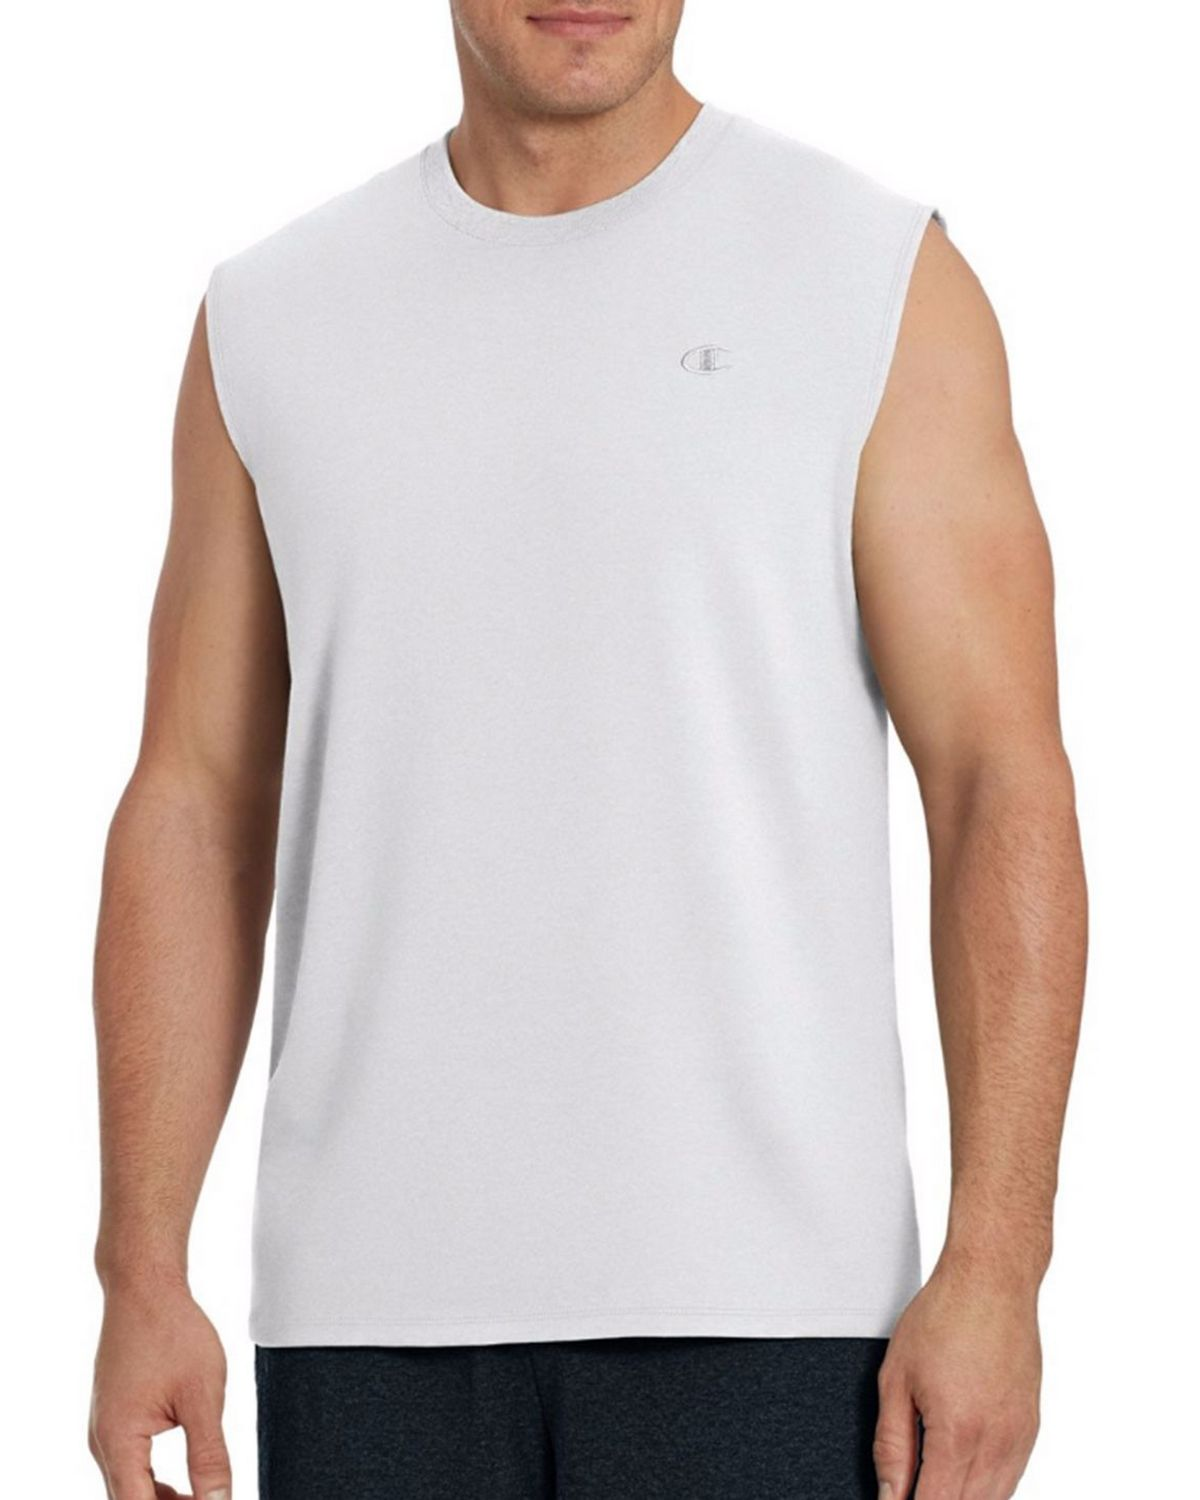 Champion T0222 Mens Muscle Tee - White - M T0222